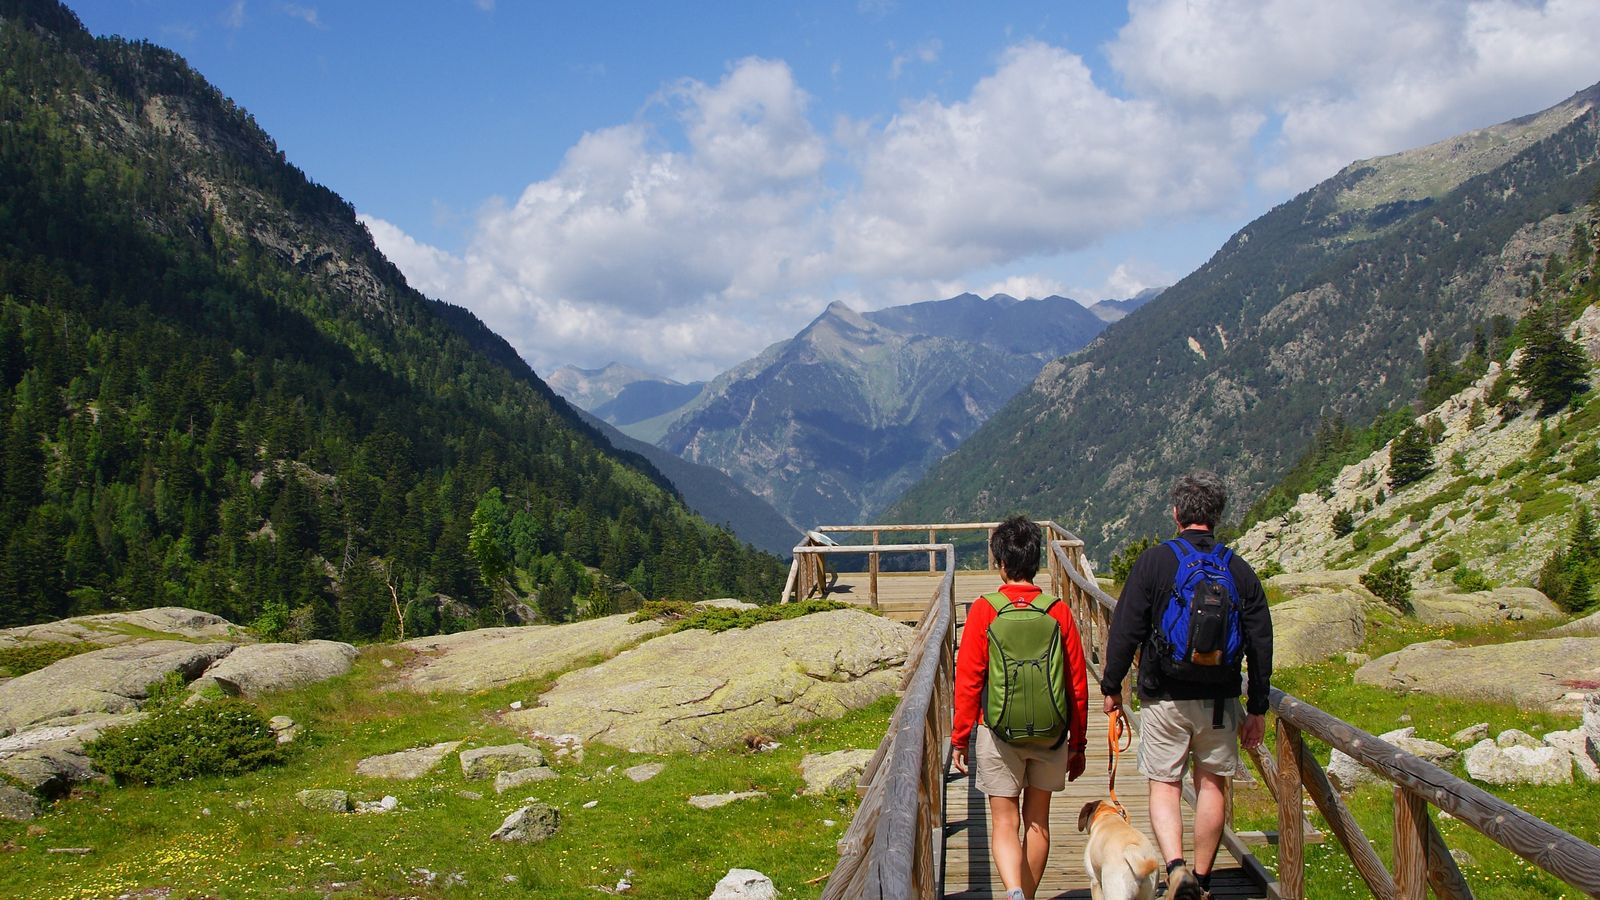 Hikers in Nationaal park Aigüestortes i Estany de Sant Maurici